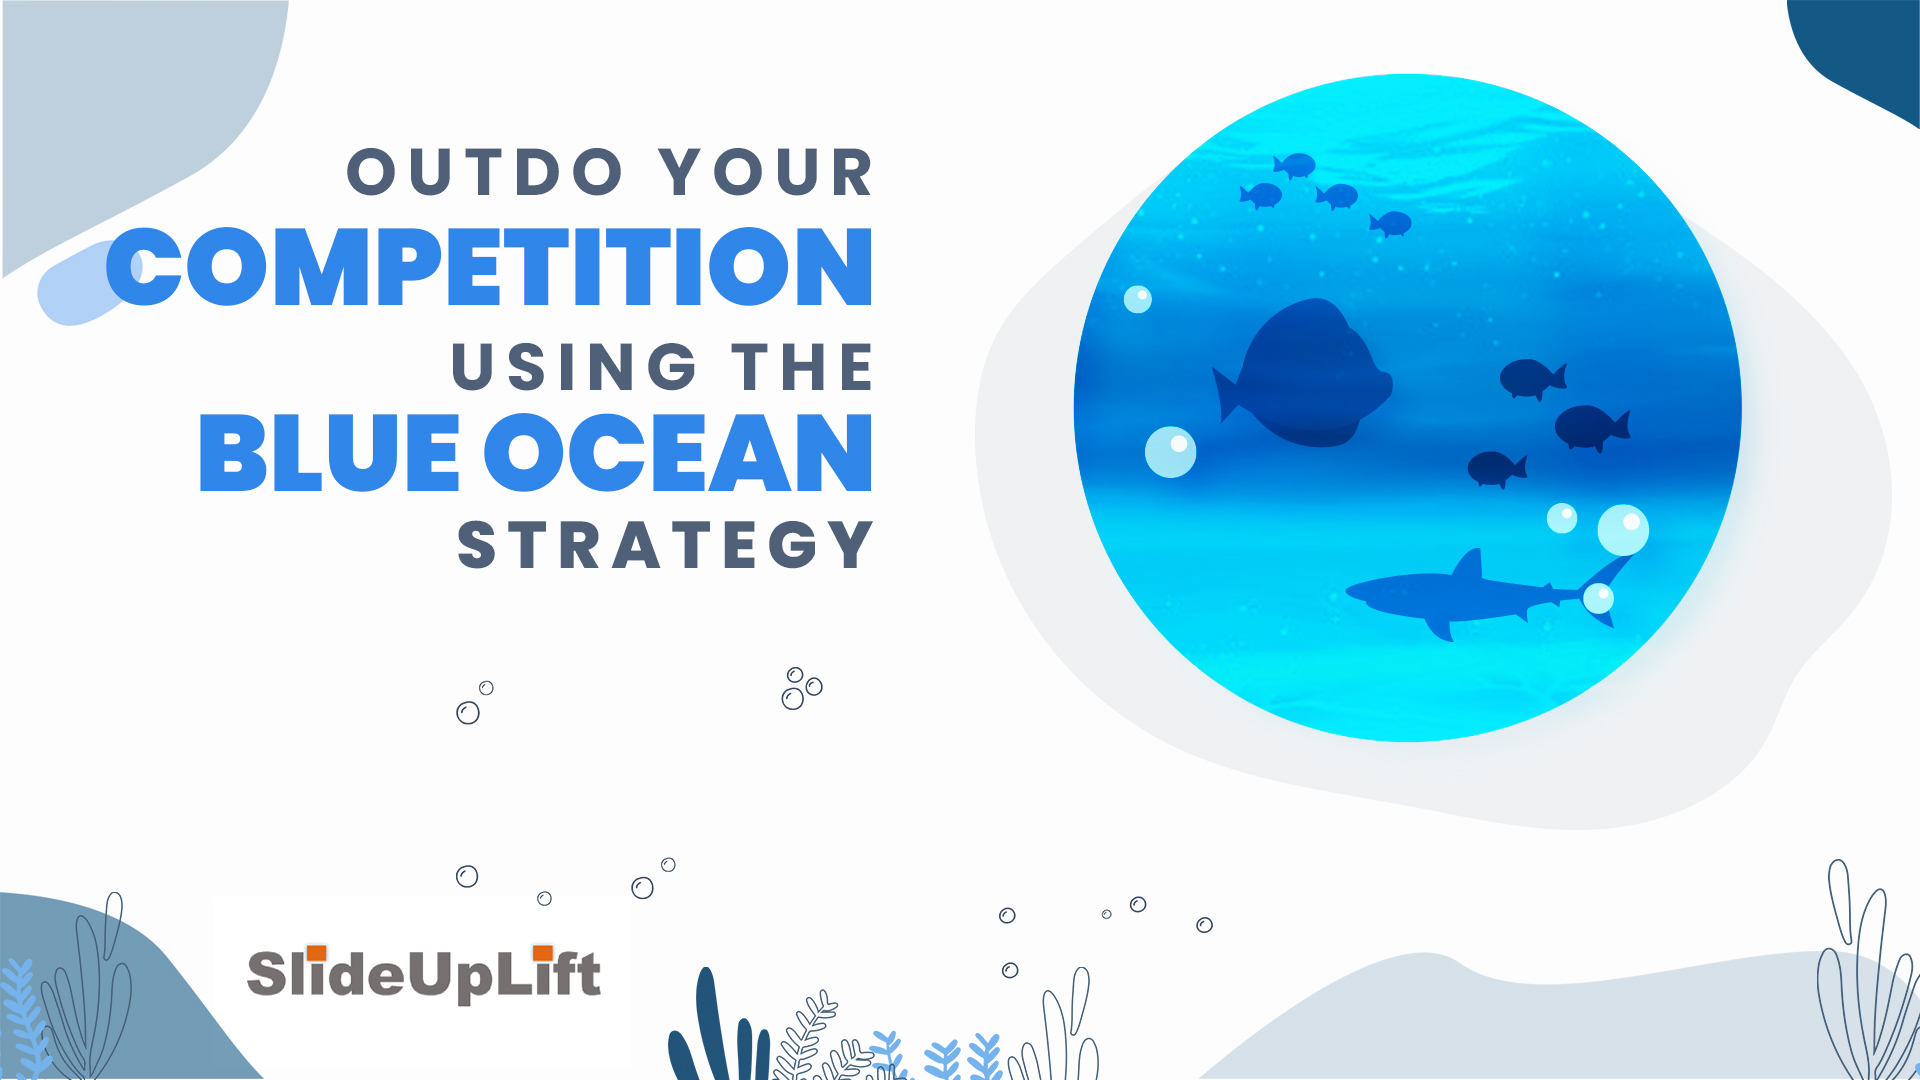 Outdo your Competition Using the Blue Ocean Strategy